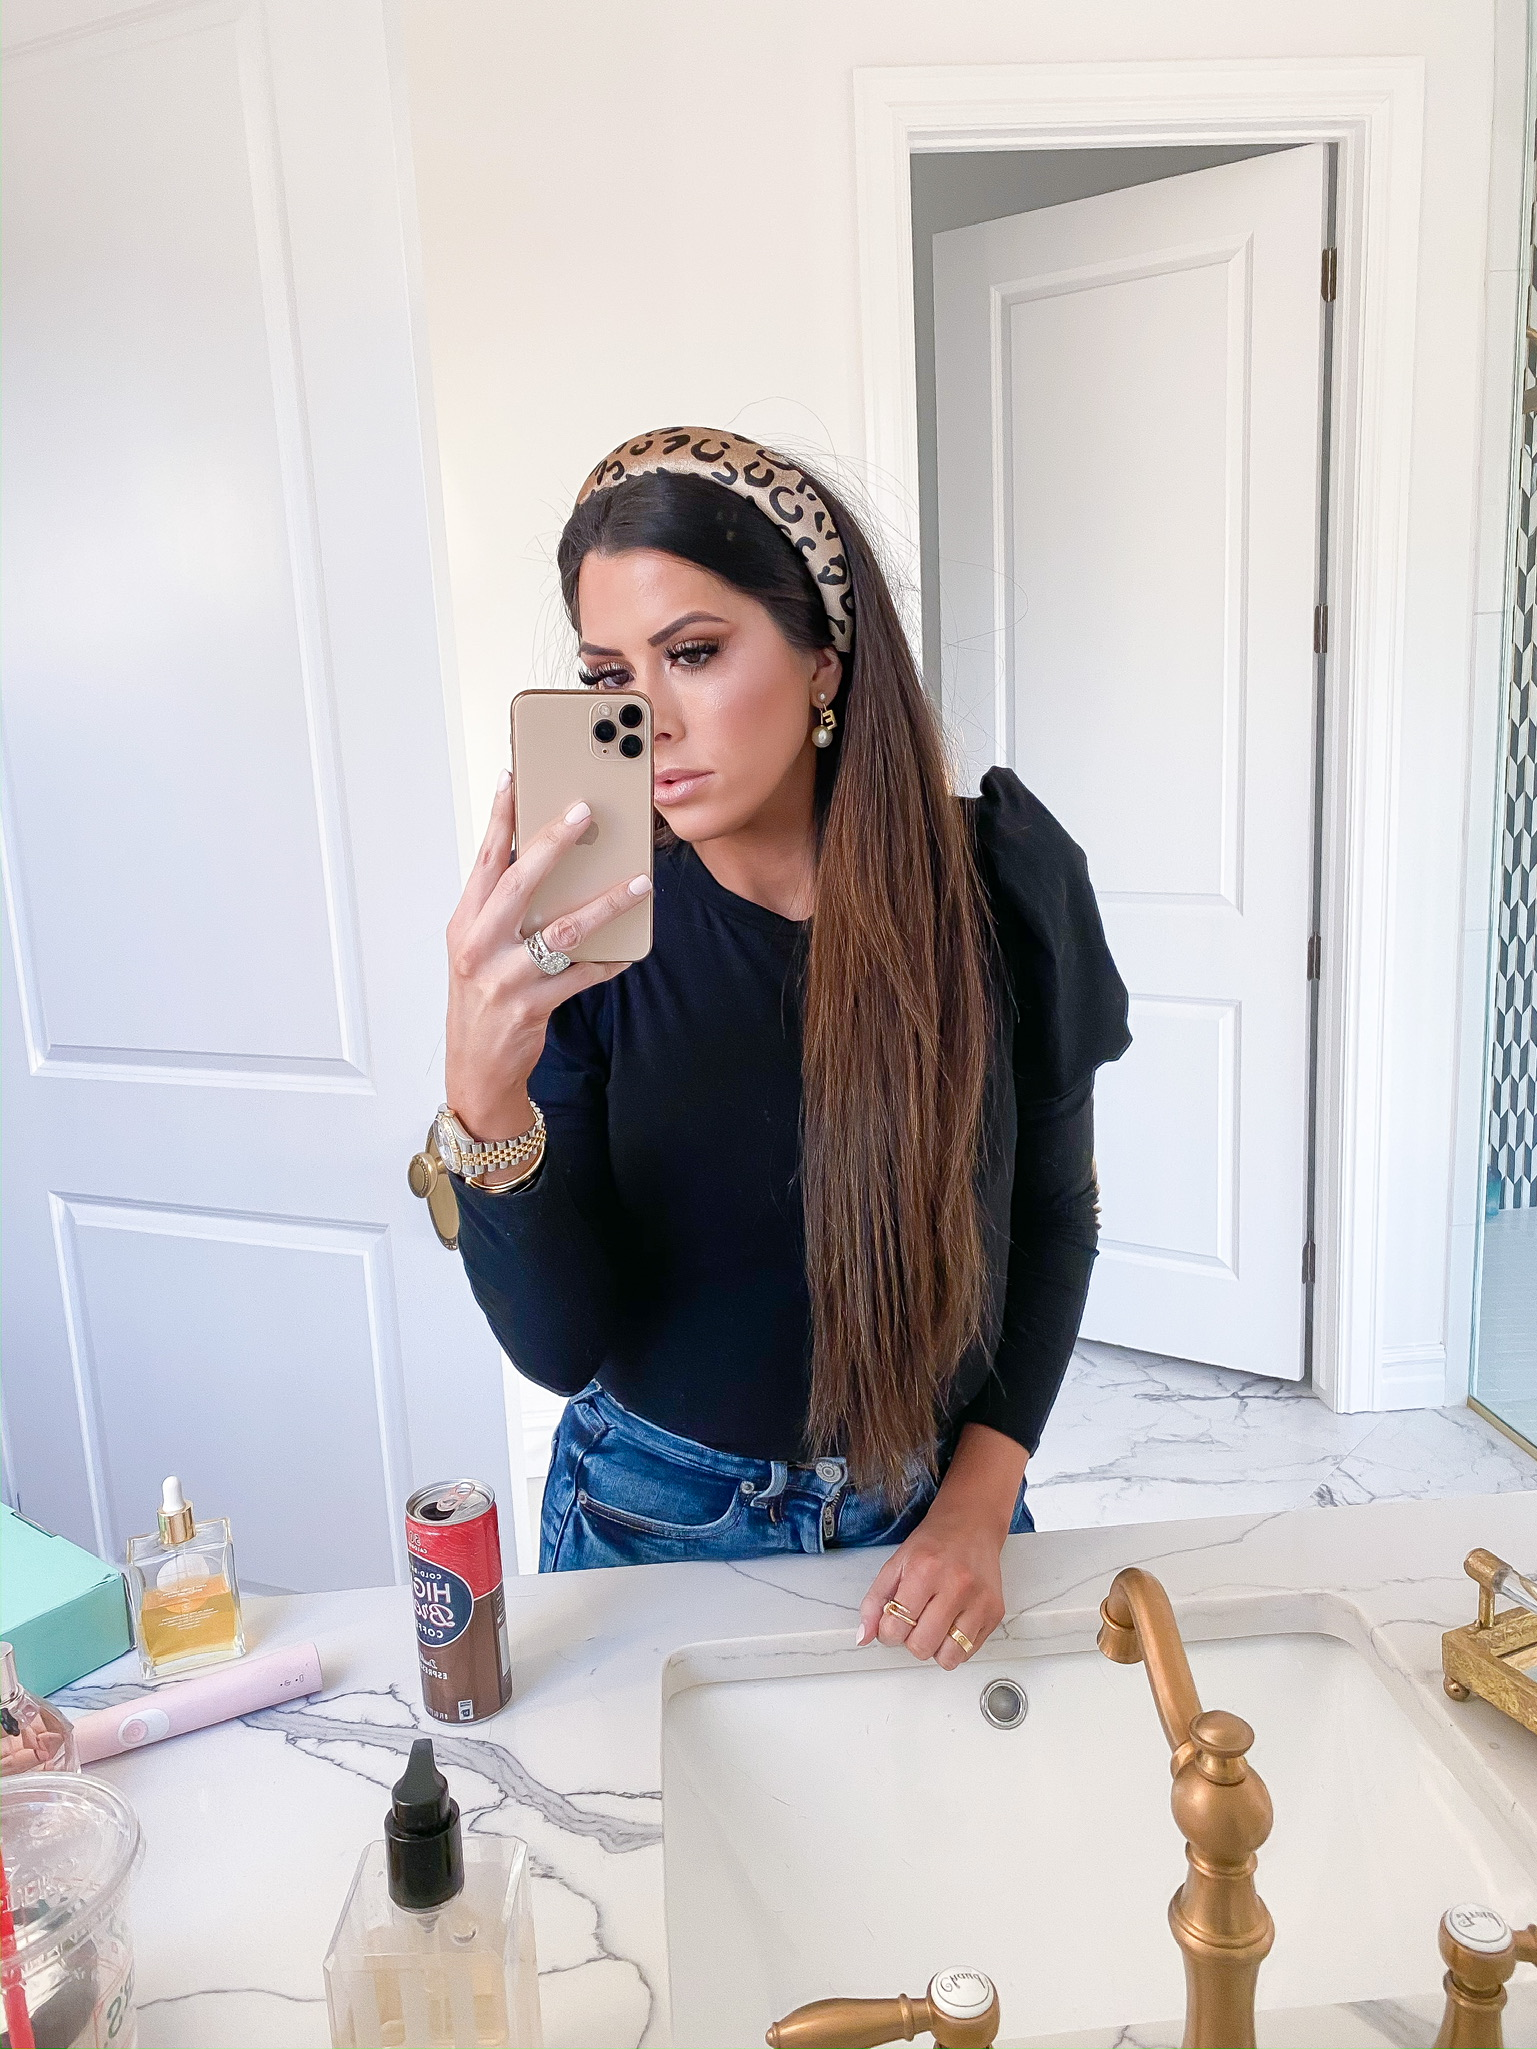 Instagram Recap by popular US fashion blog, The Sweetest Thing: image of a woman wearing a Nordstrom On the Prowl Leopard Print Headband 8 OTHER REASONS and Nordstrom Puff Shoulder Crop Tee ONE CLOTHING.